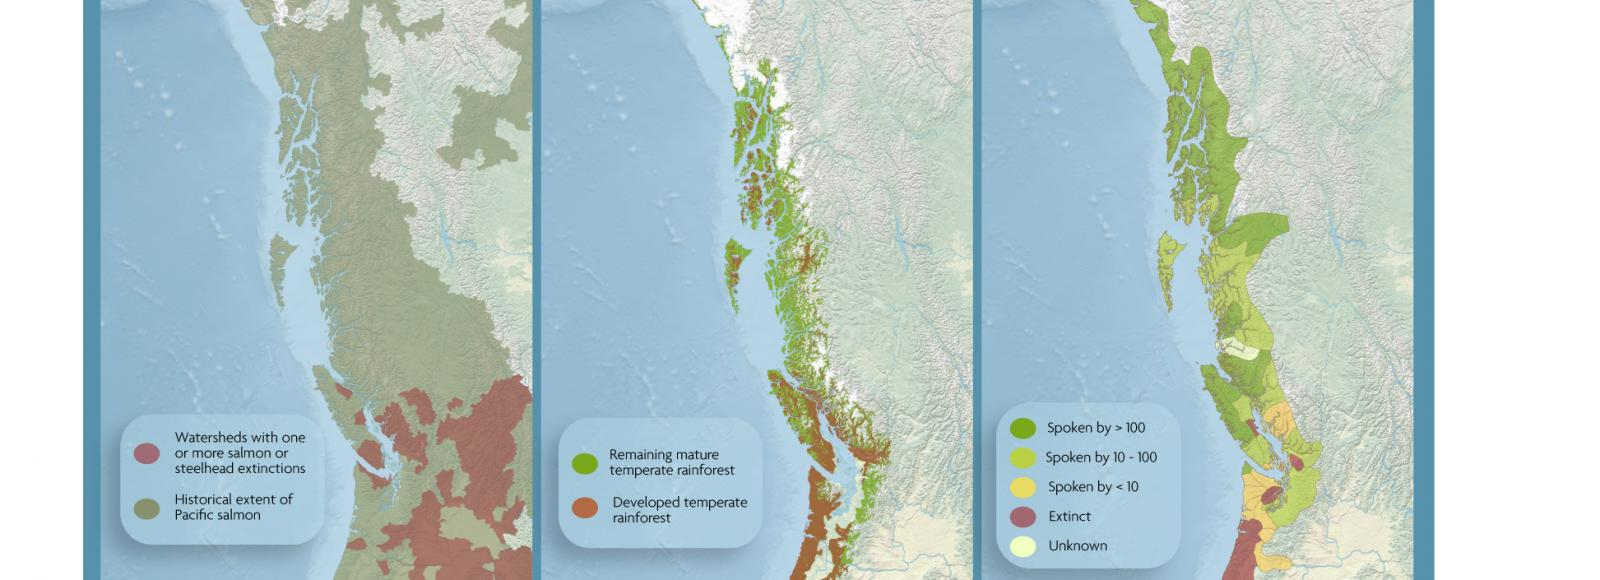 Three side by side maps showing the decline of salmon, forests, and languages in the Pacific Northwest.